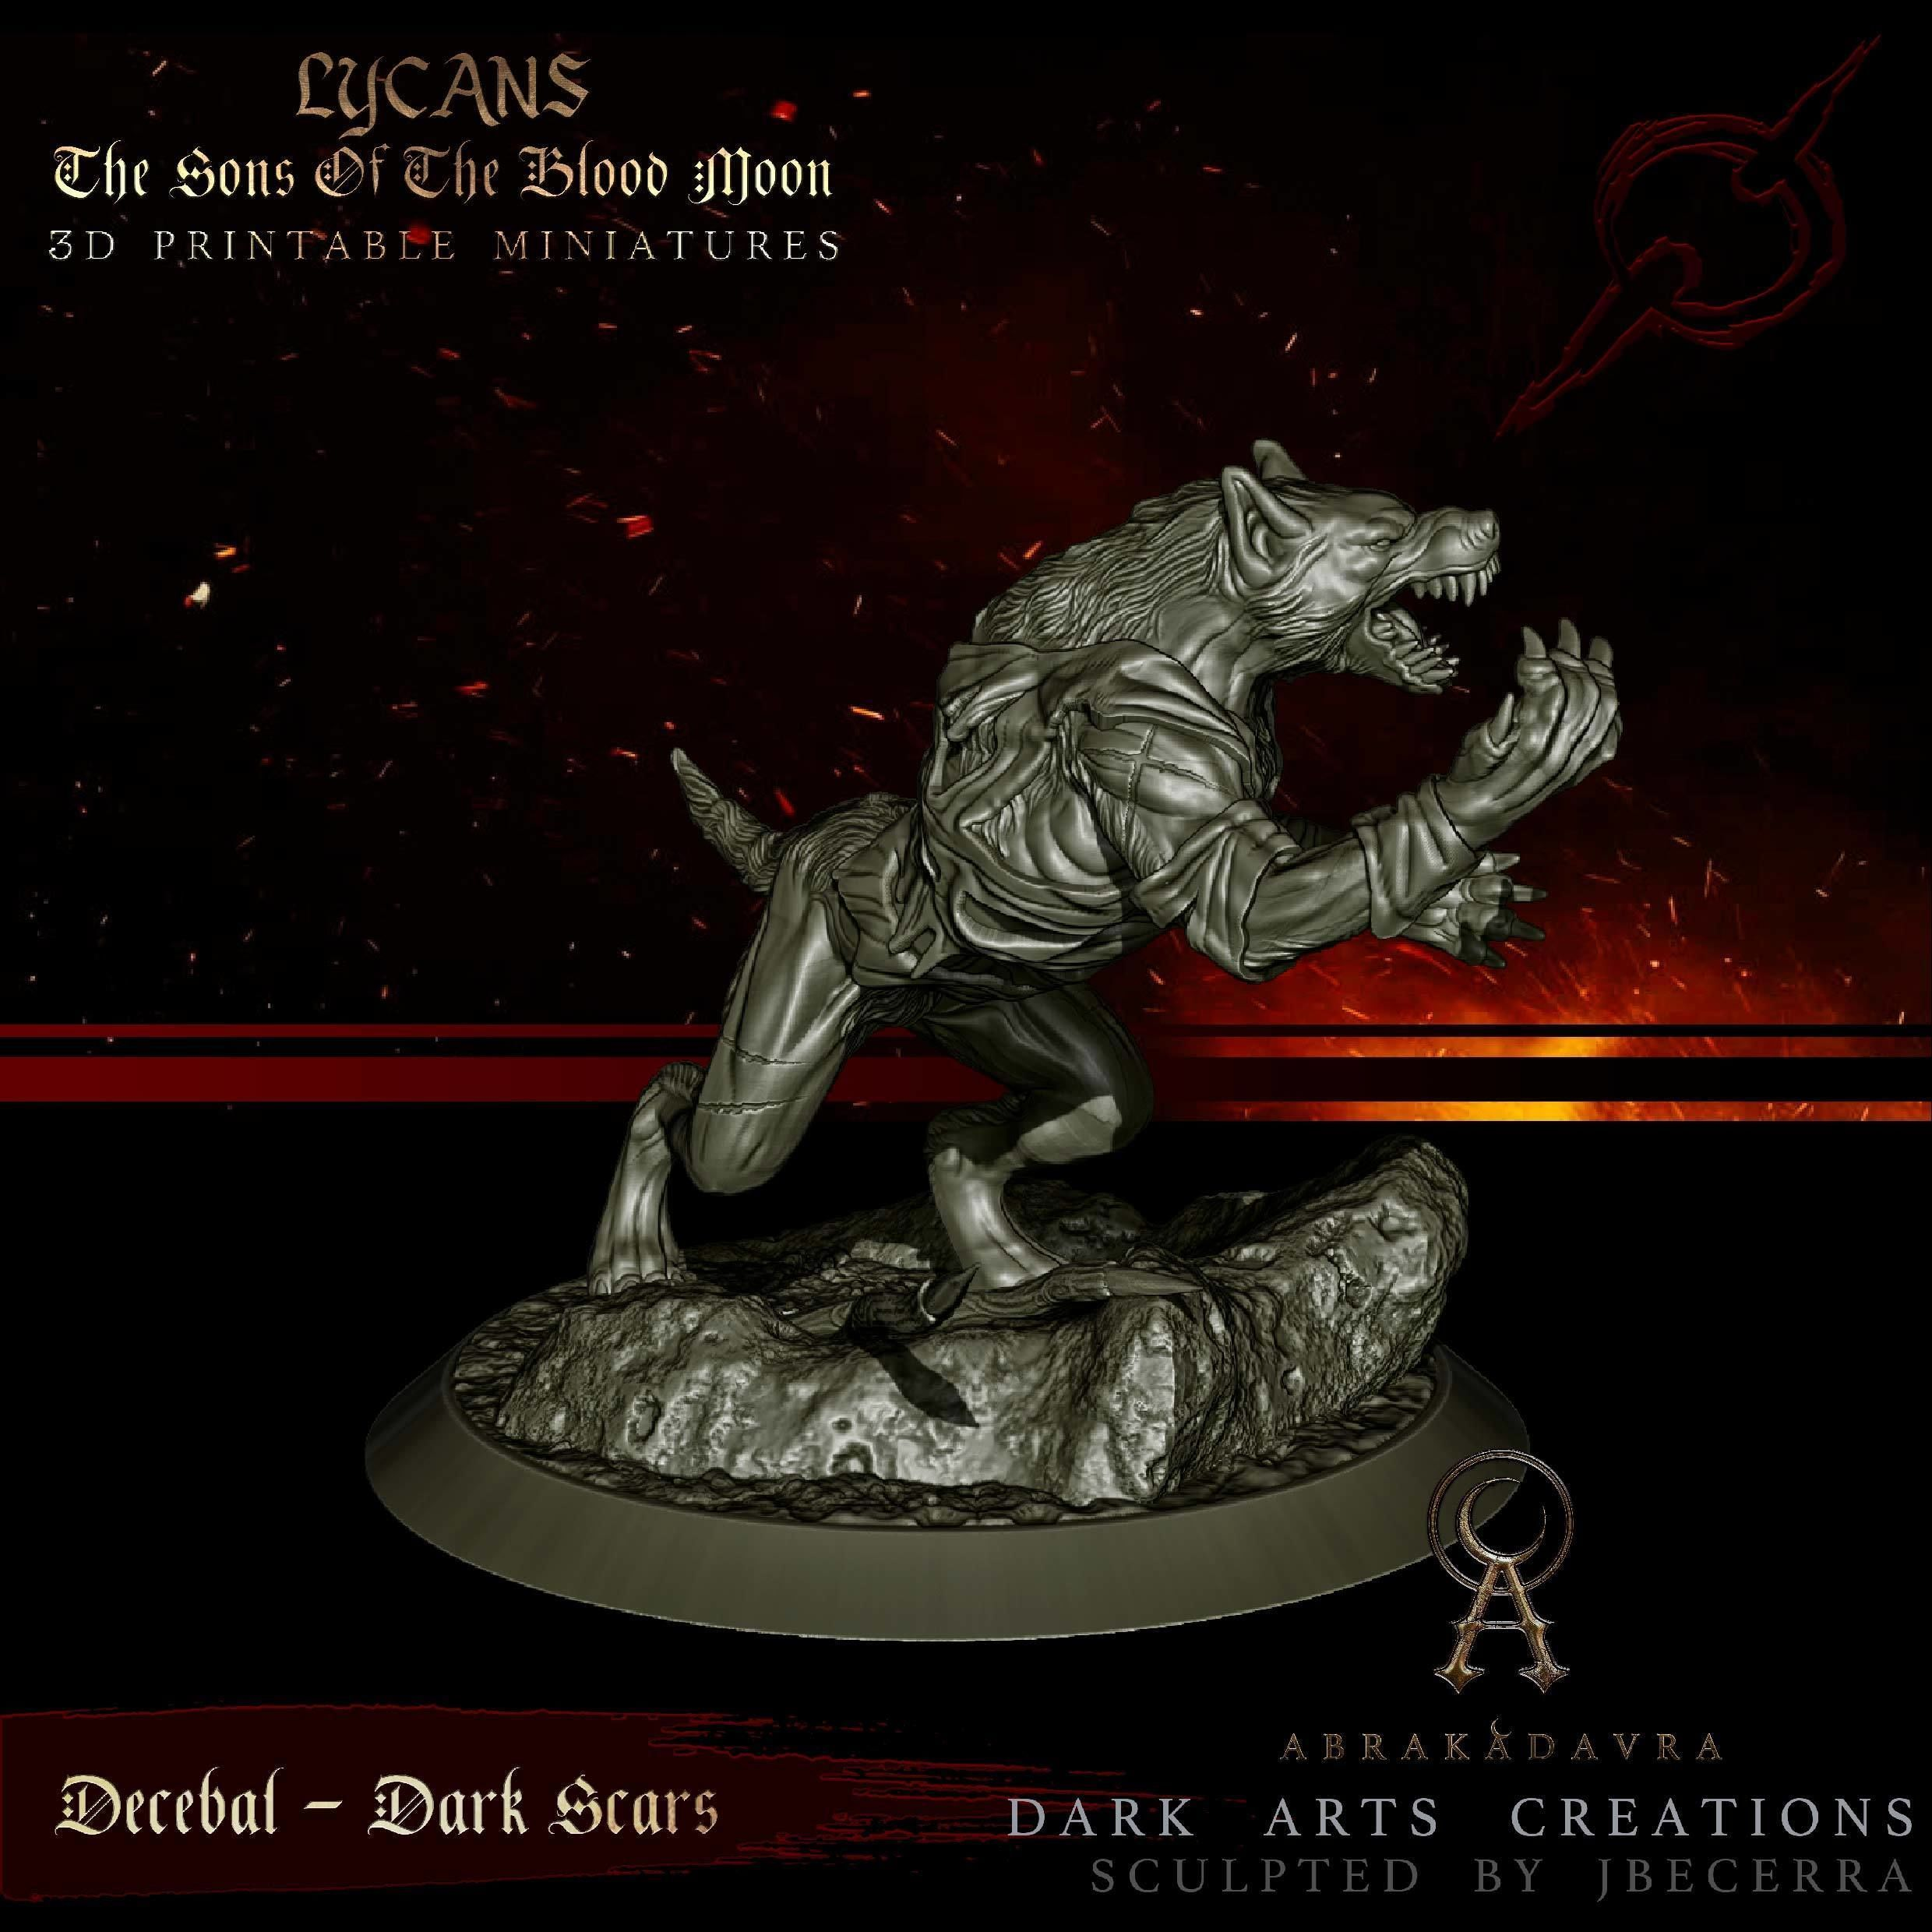 Werewolf - Lycan 4 - Sons of the Blood Moon - 3D Printable